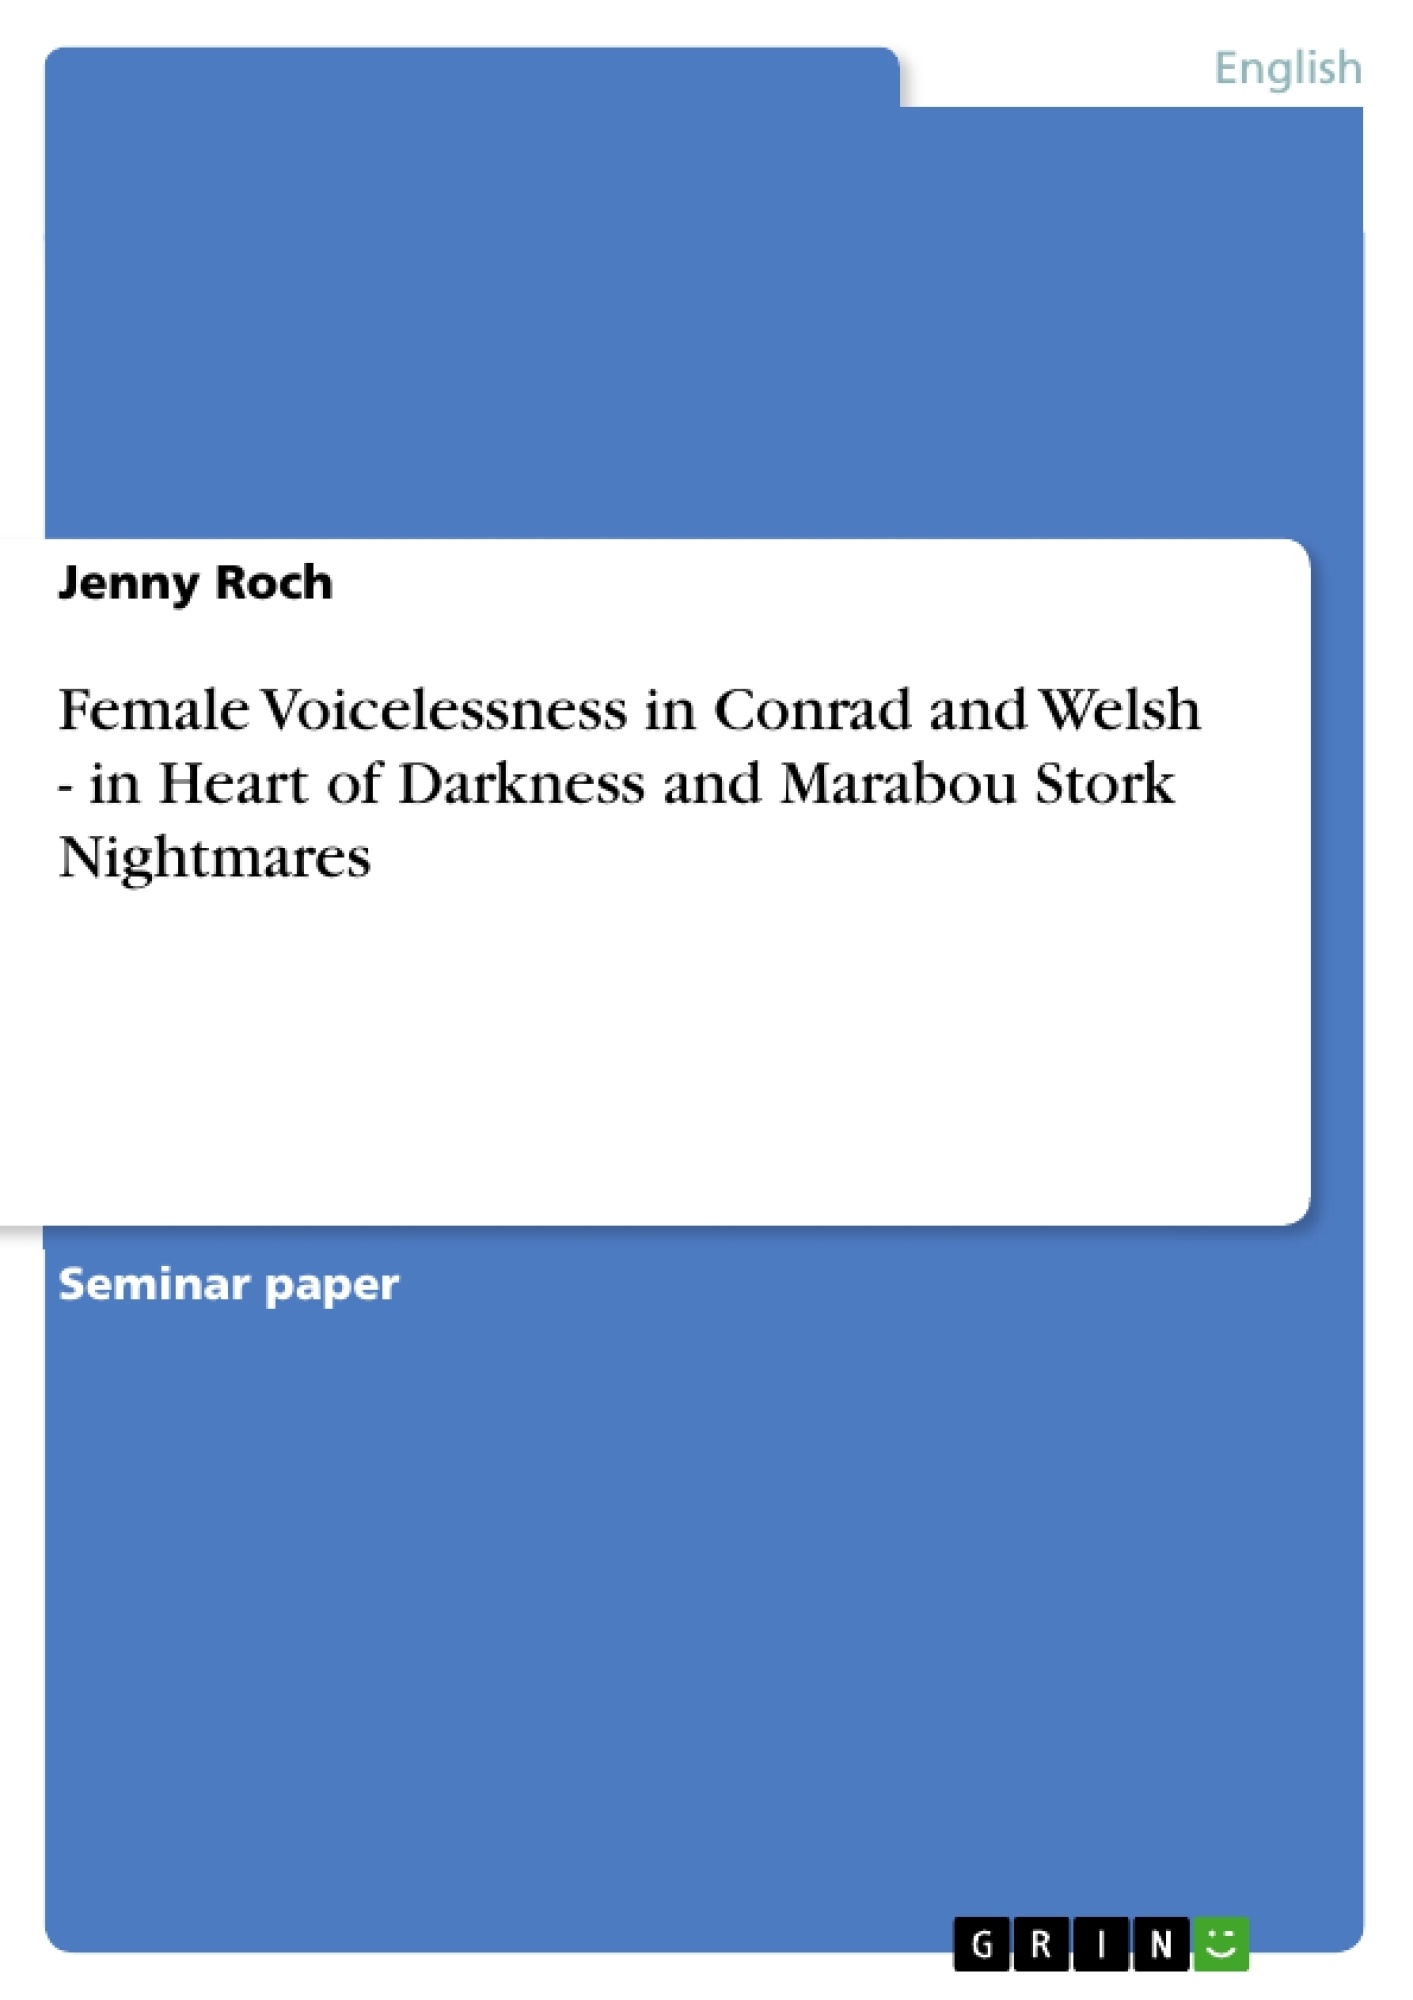 Title: Female Voicelessness in Conrad and Welsh -  in Heart of Darkness and Marabou Stork Nightmares